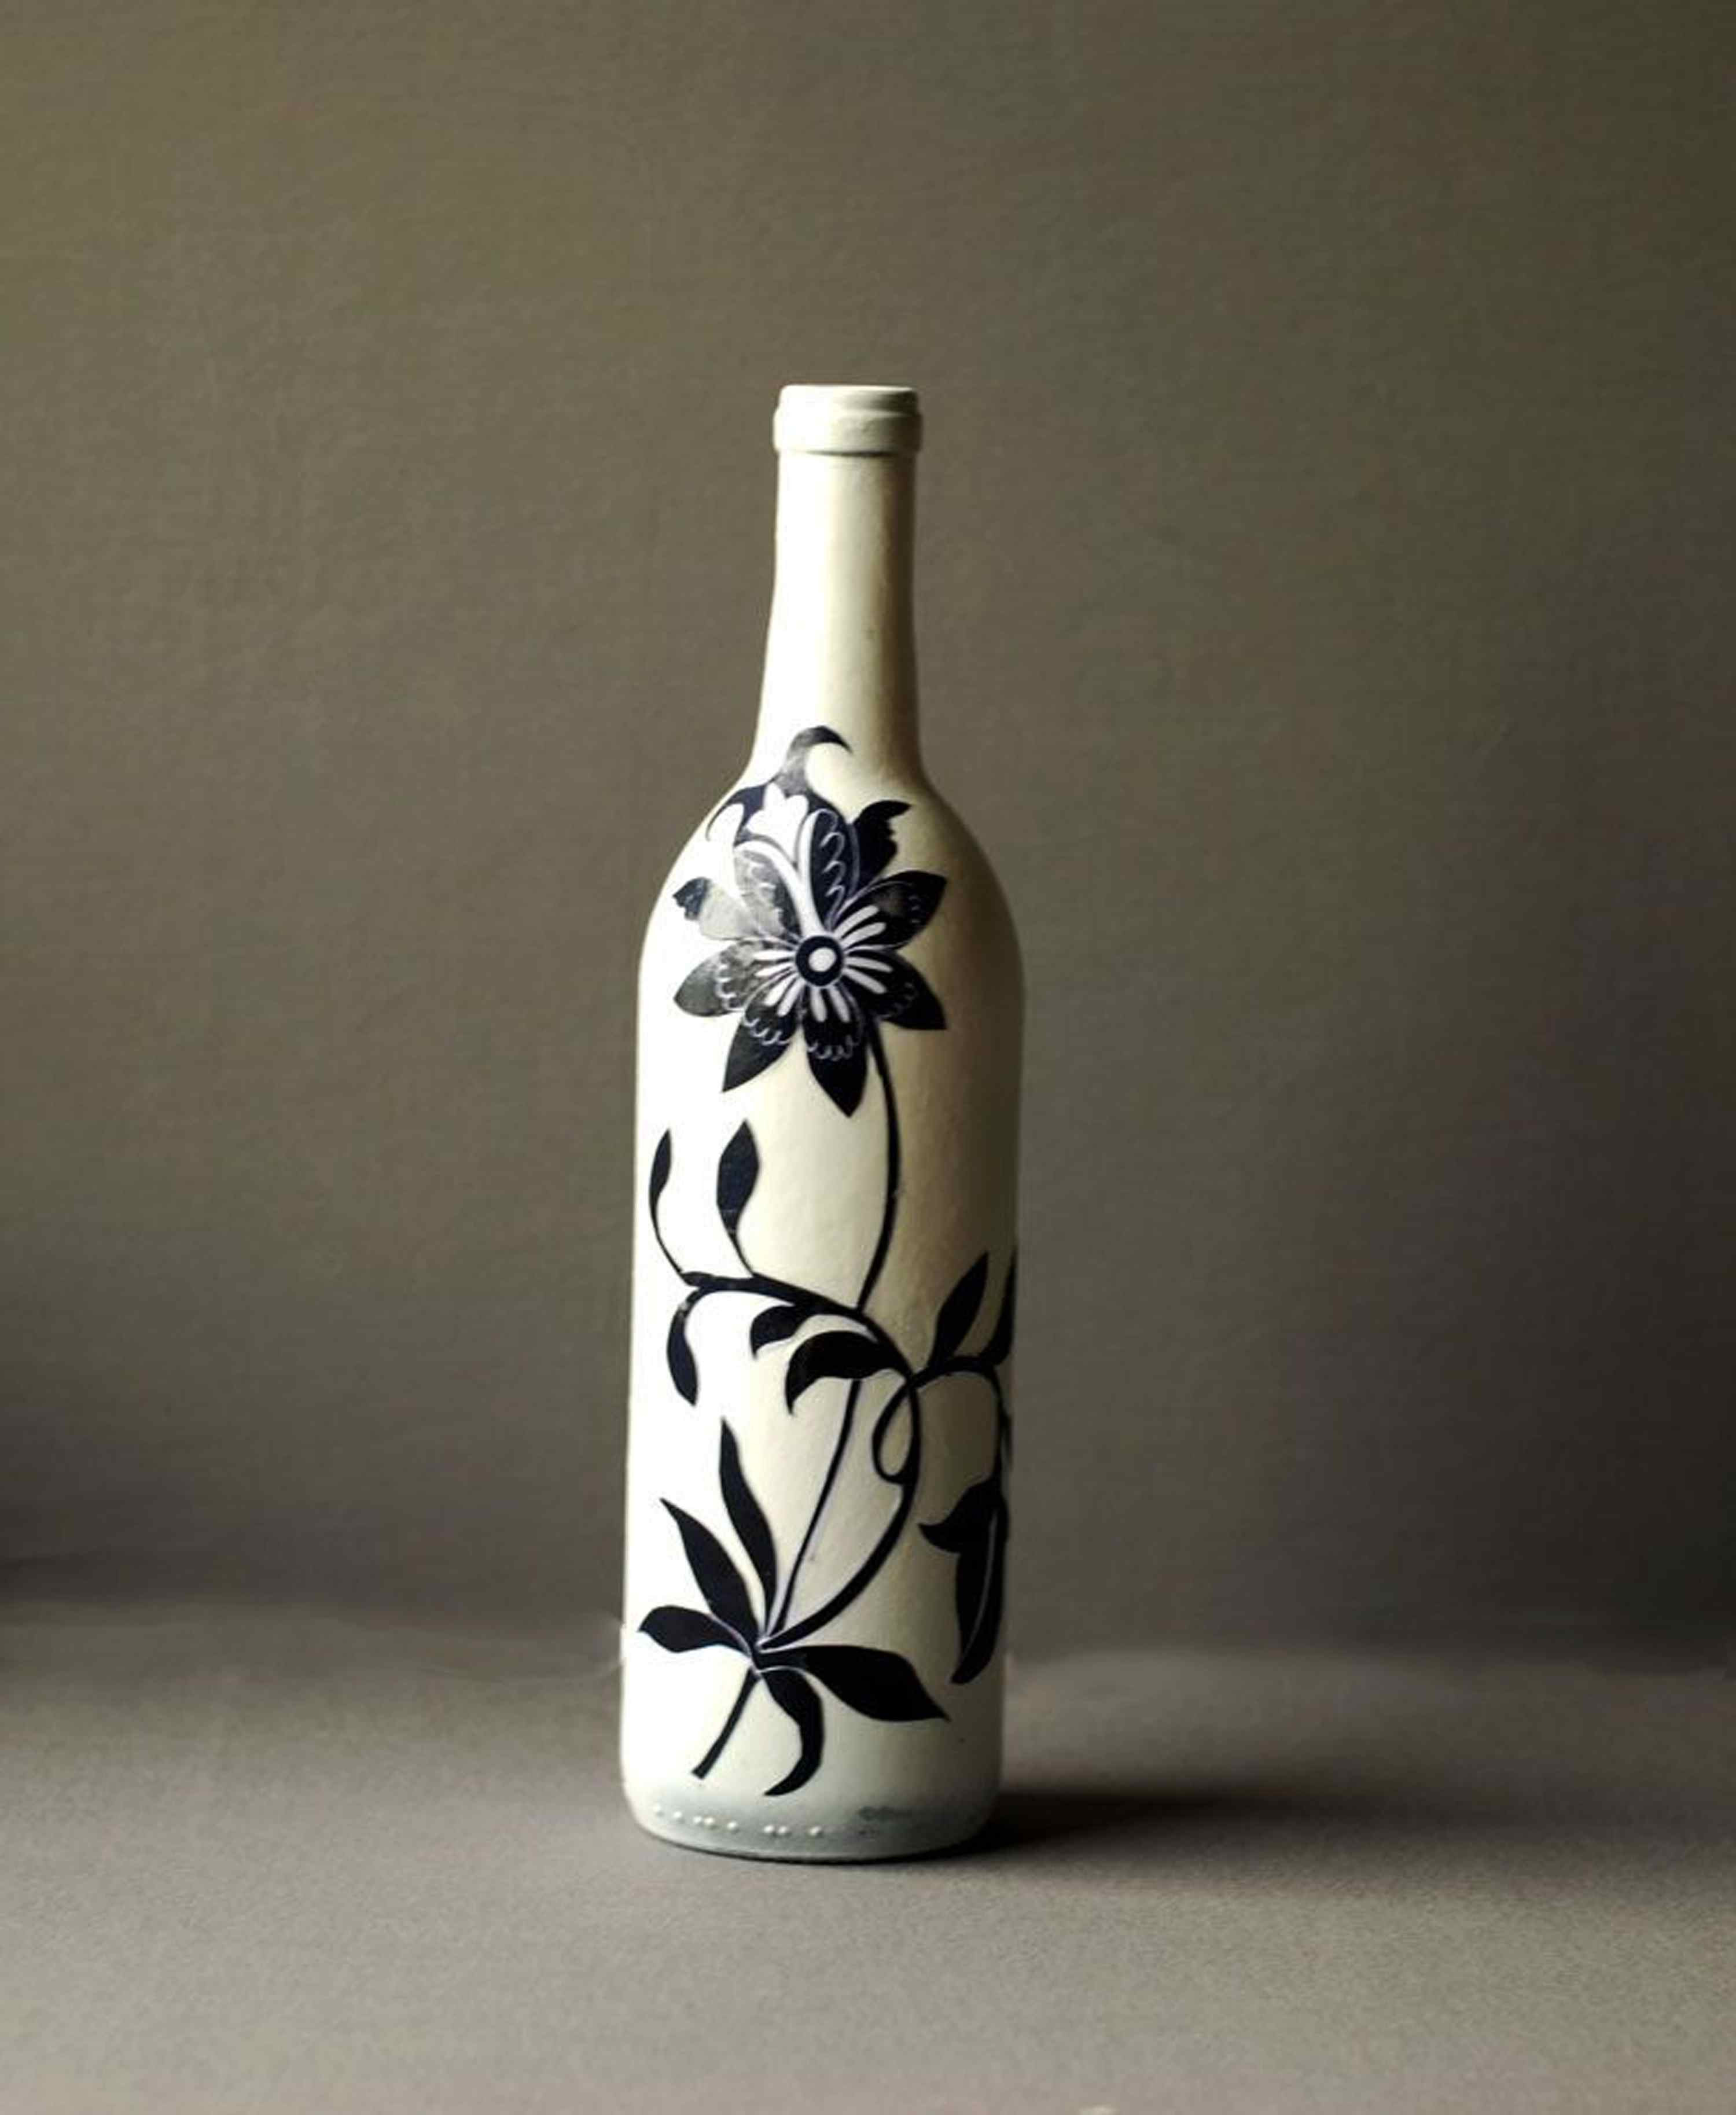 22 Popular Vintage Glass Bottle Vase 2021 free download vintage glass bottle vase of asian style recycled decoupage wine bottle craft throughout decoupaged wine bottle 58bcb5685f9b58af5cc40cbb